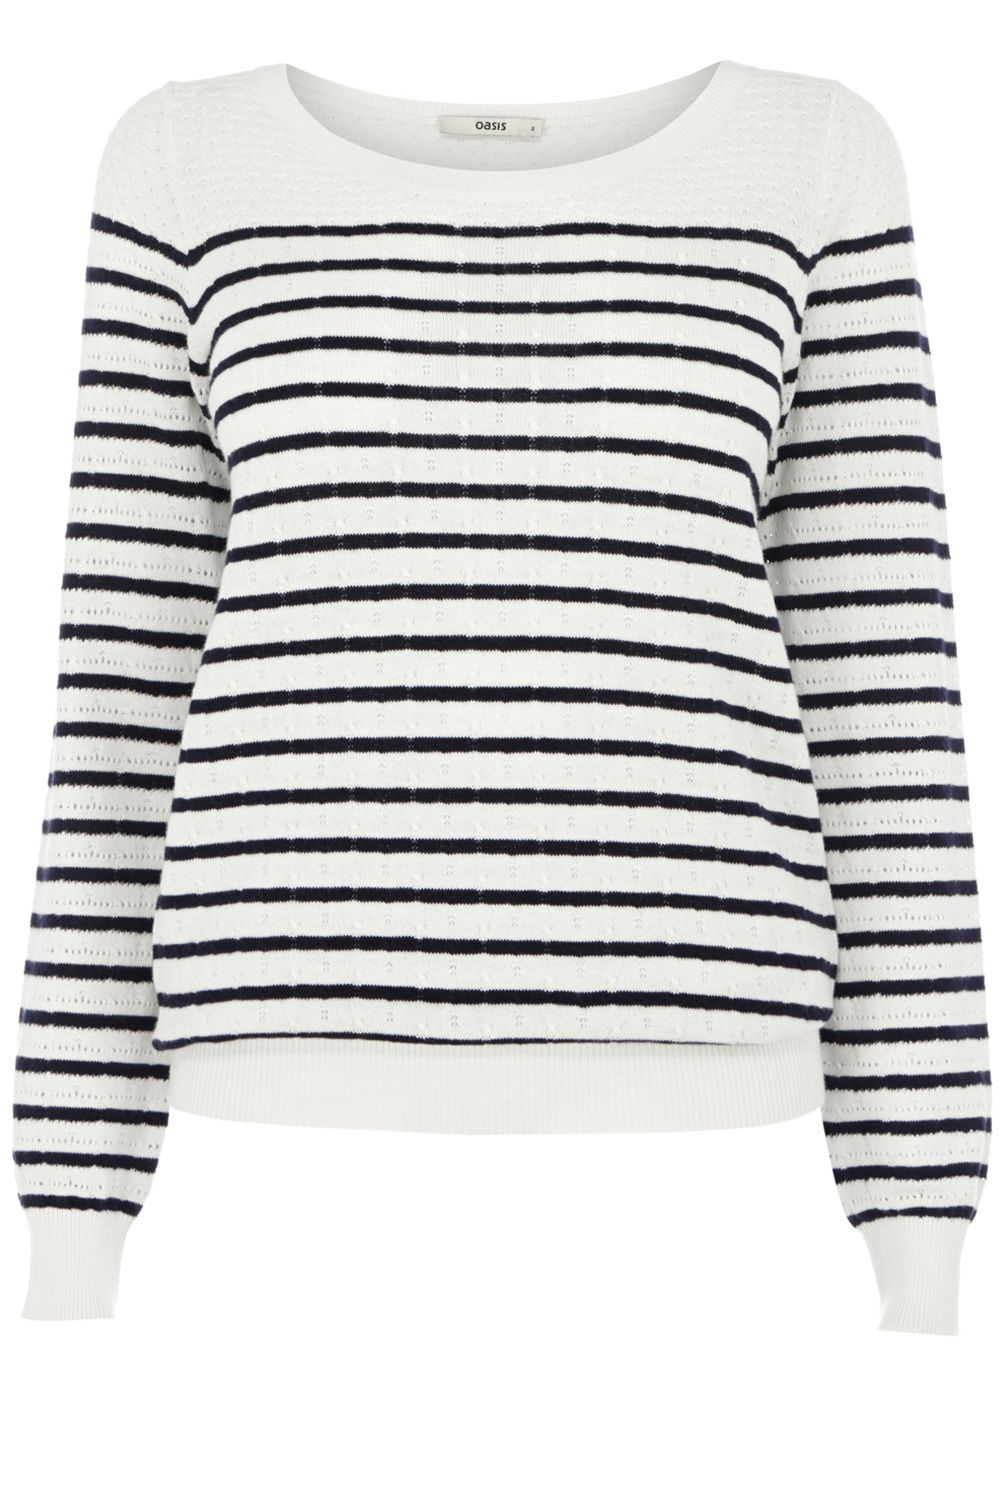 Pointelle Breton stripe top